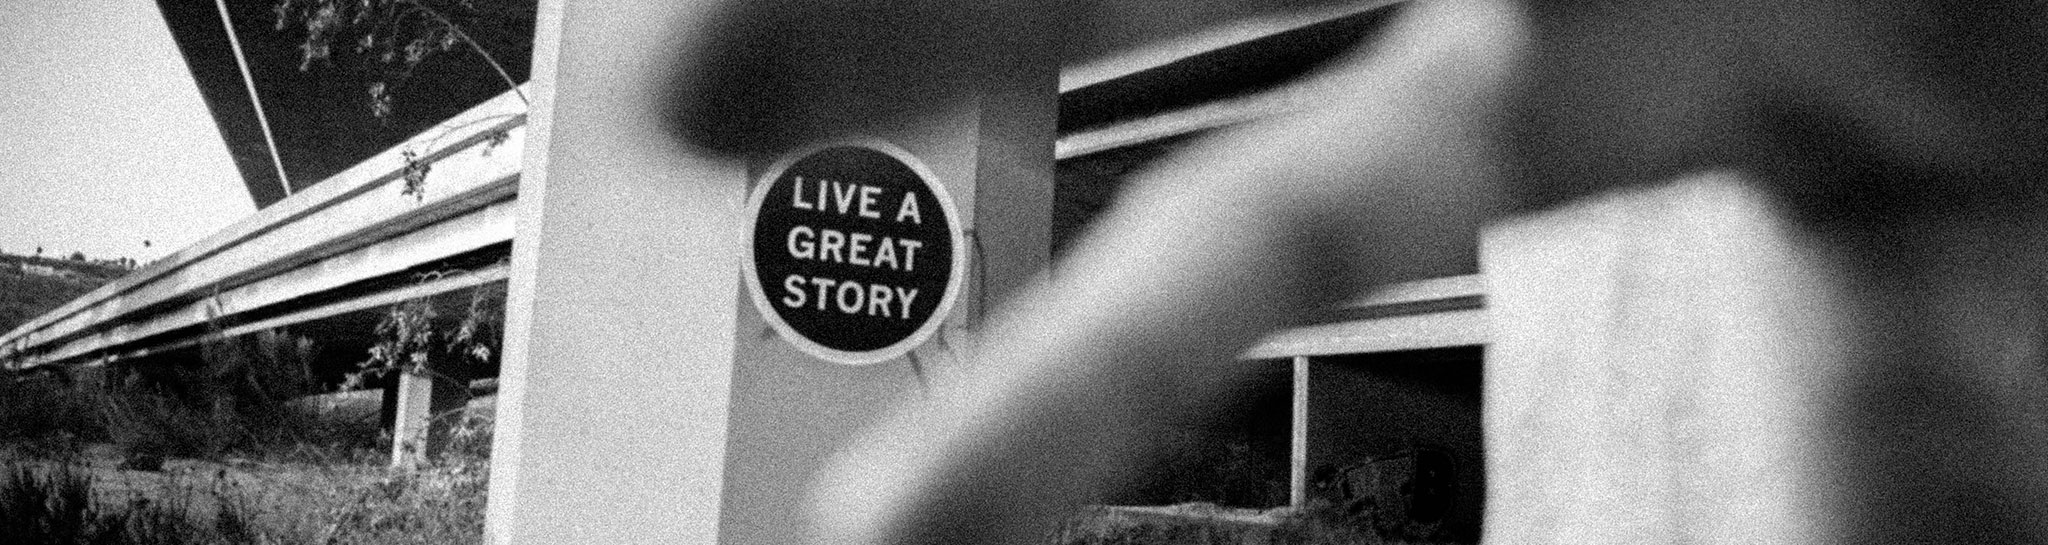 Live a Great Story: A Brand That's Also a Way of Life